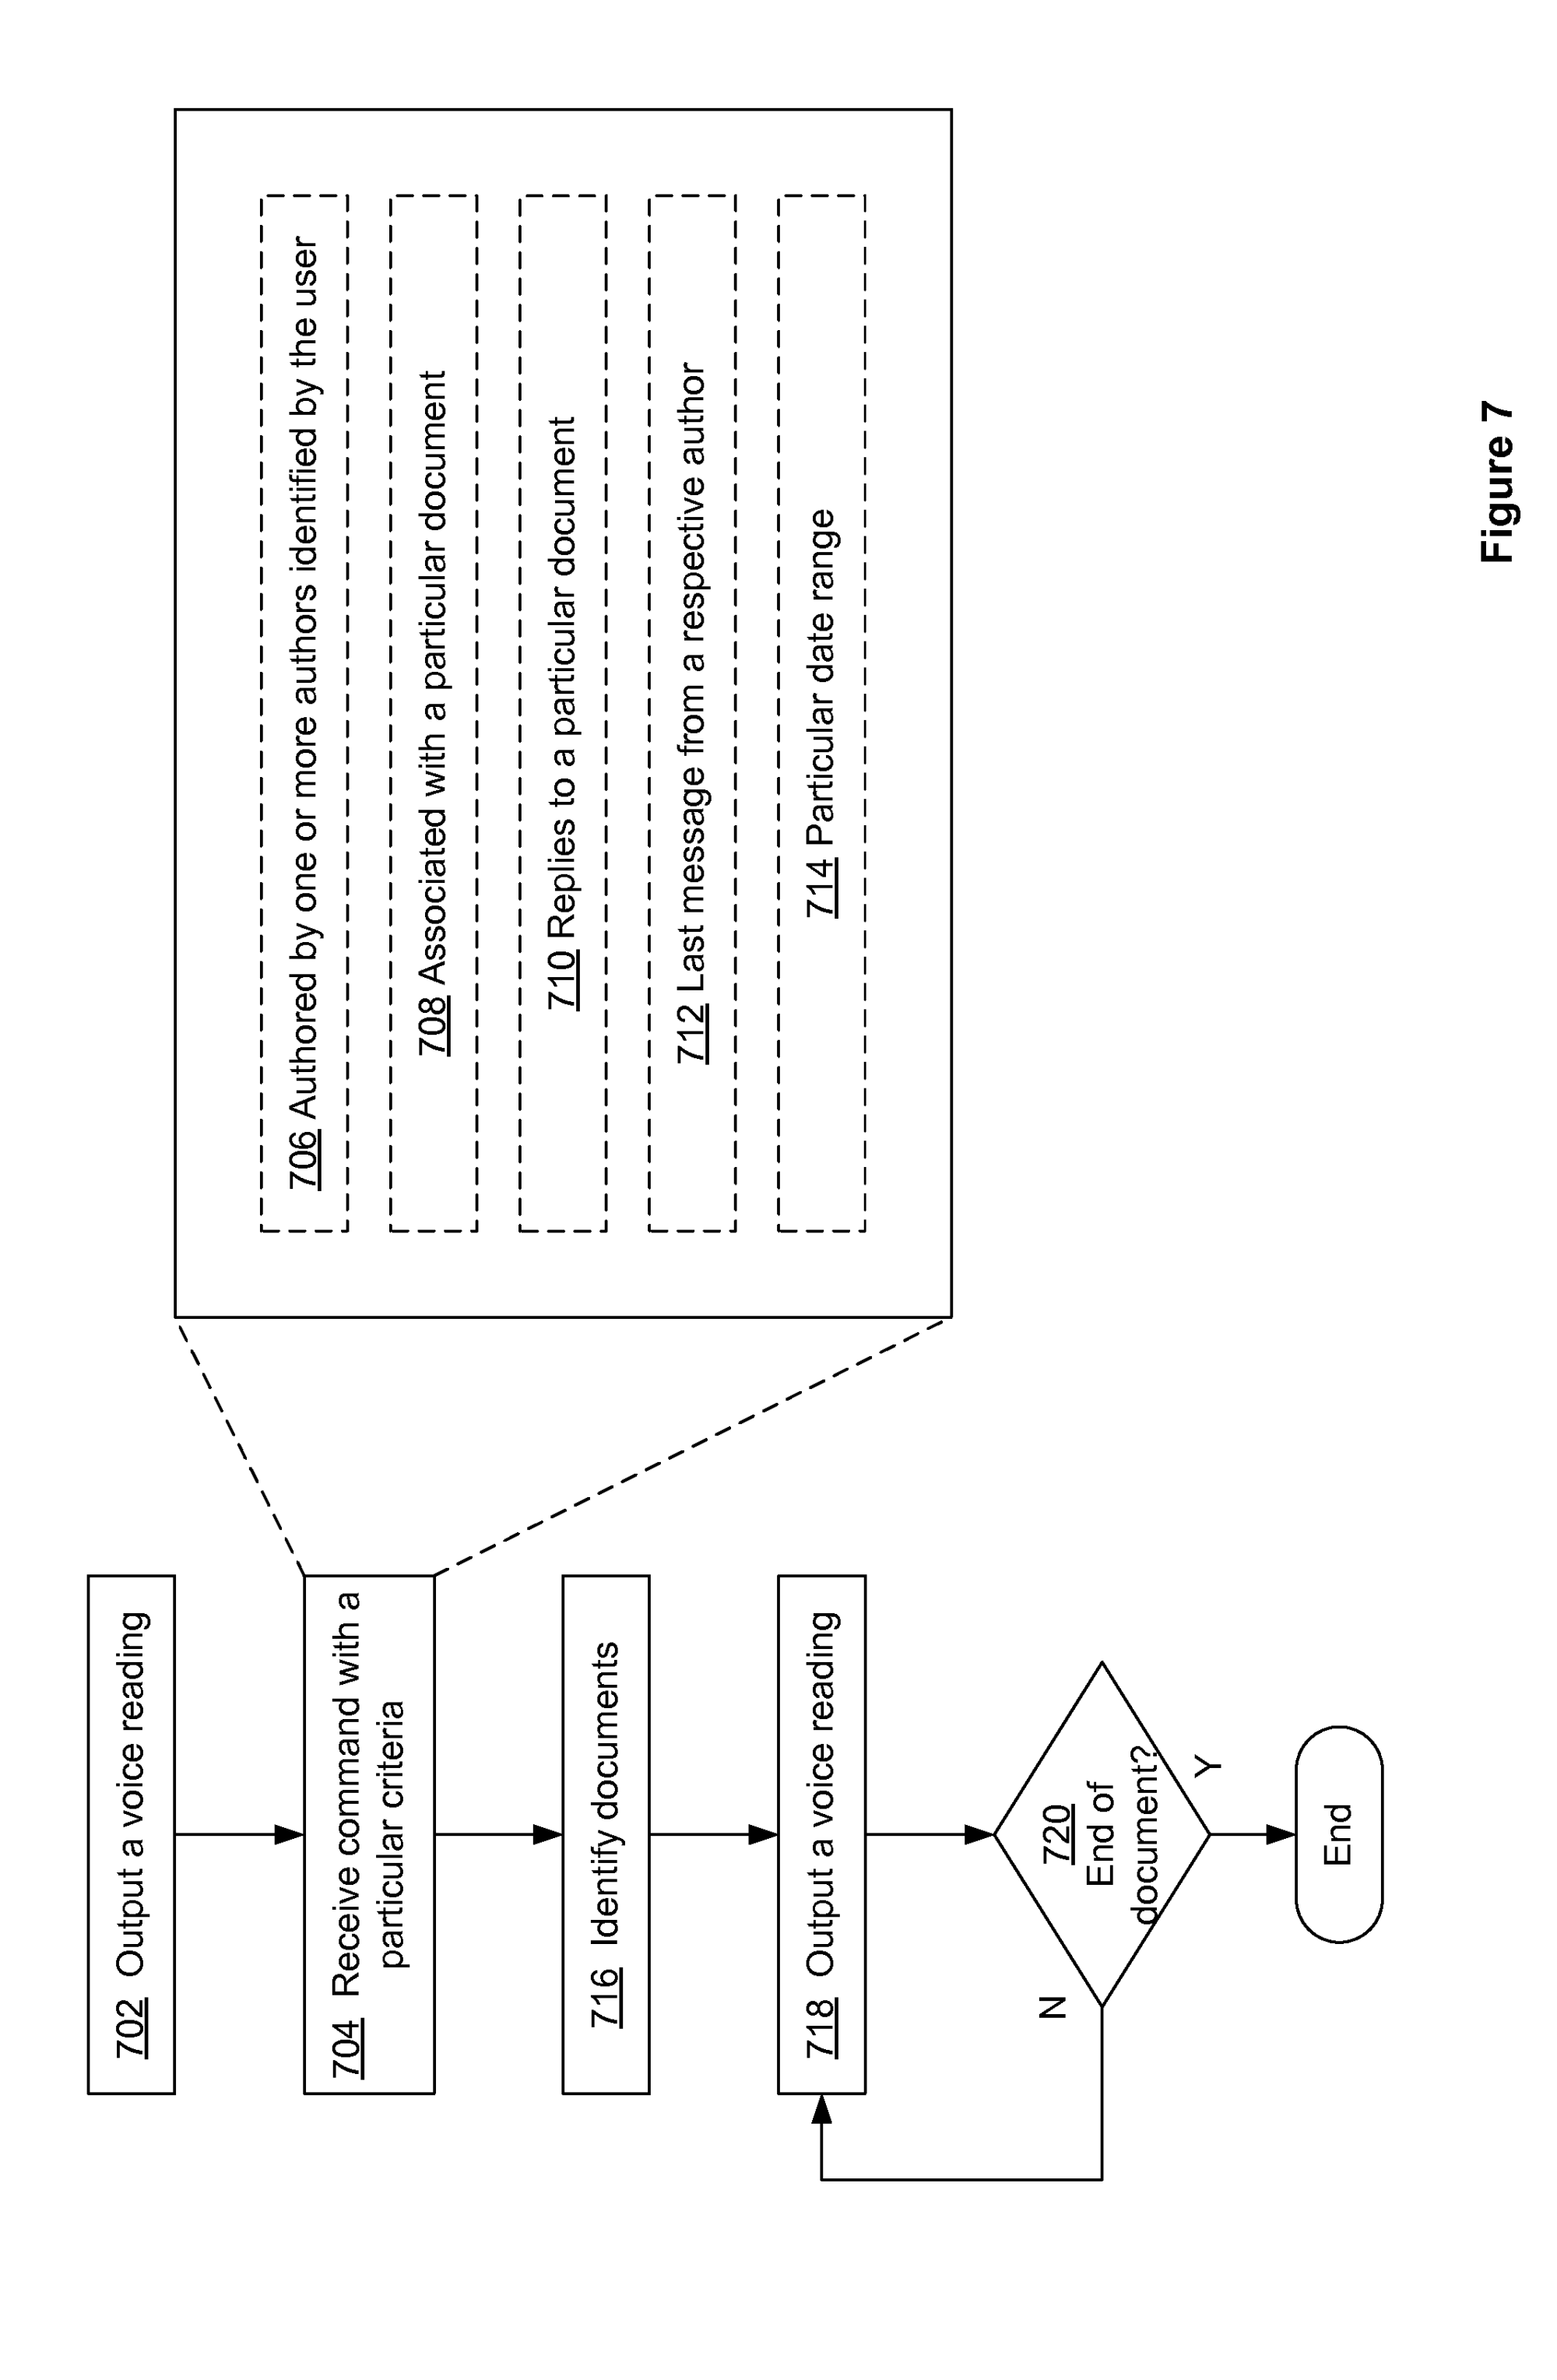 hight resolution of  us9495129b2 device method and user interface for voice activated on